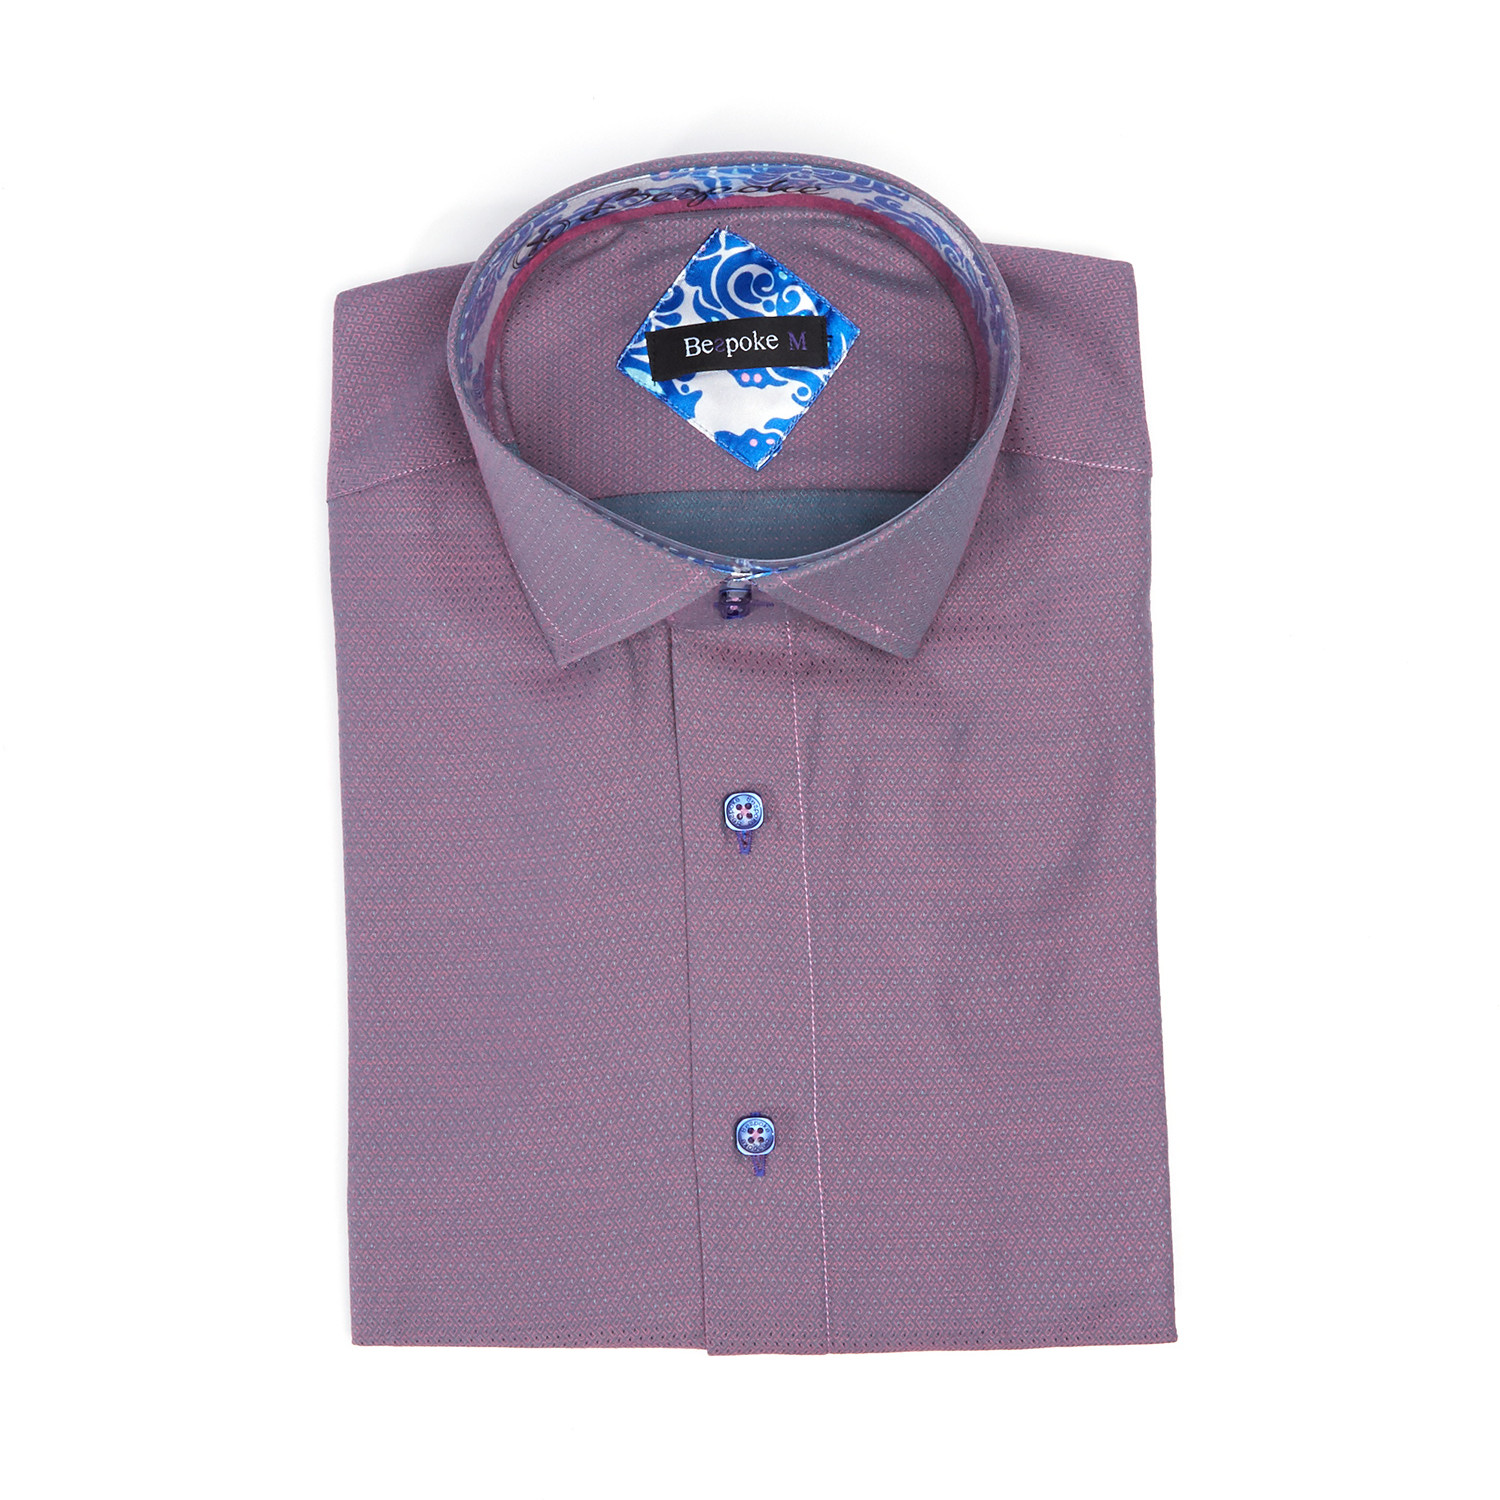 Bespoke Norway Button Up Shirt Lilac Xl Fashion Clearance